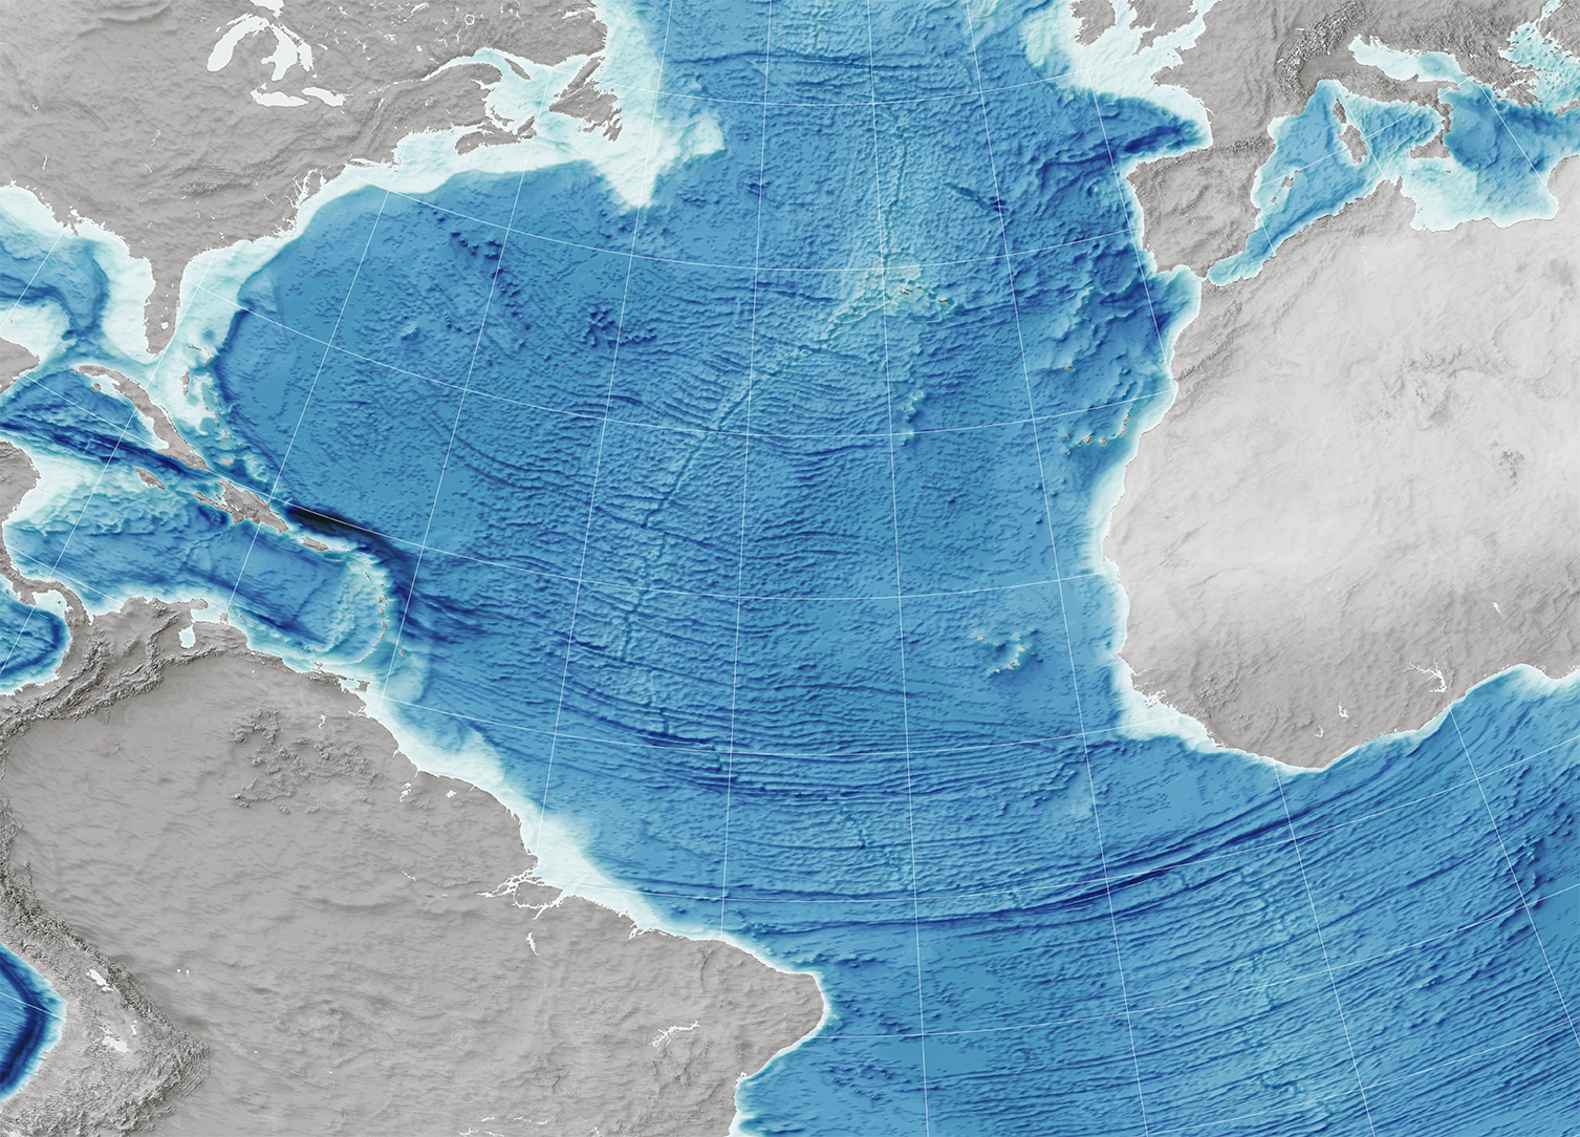 Studying Earth's gravity fields reveals